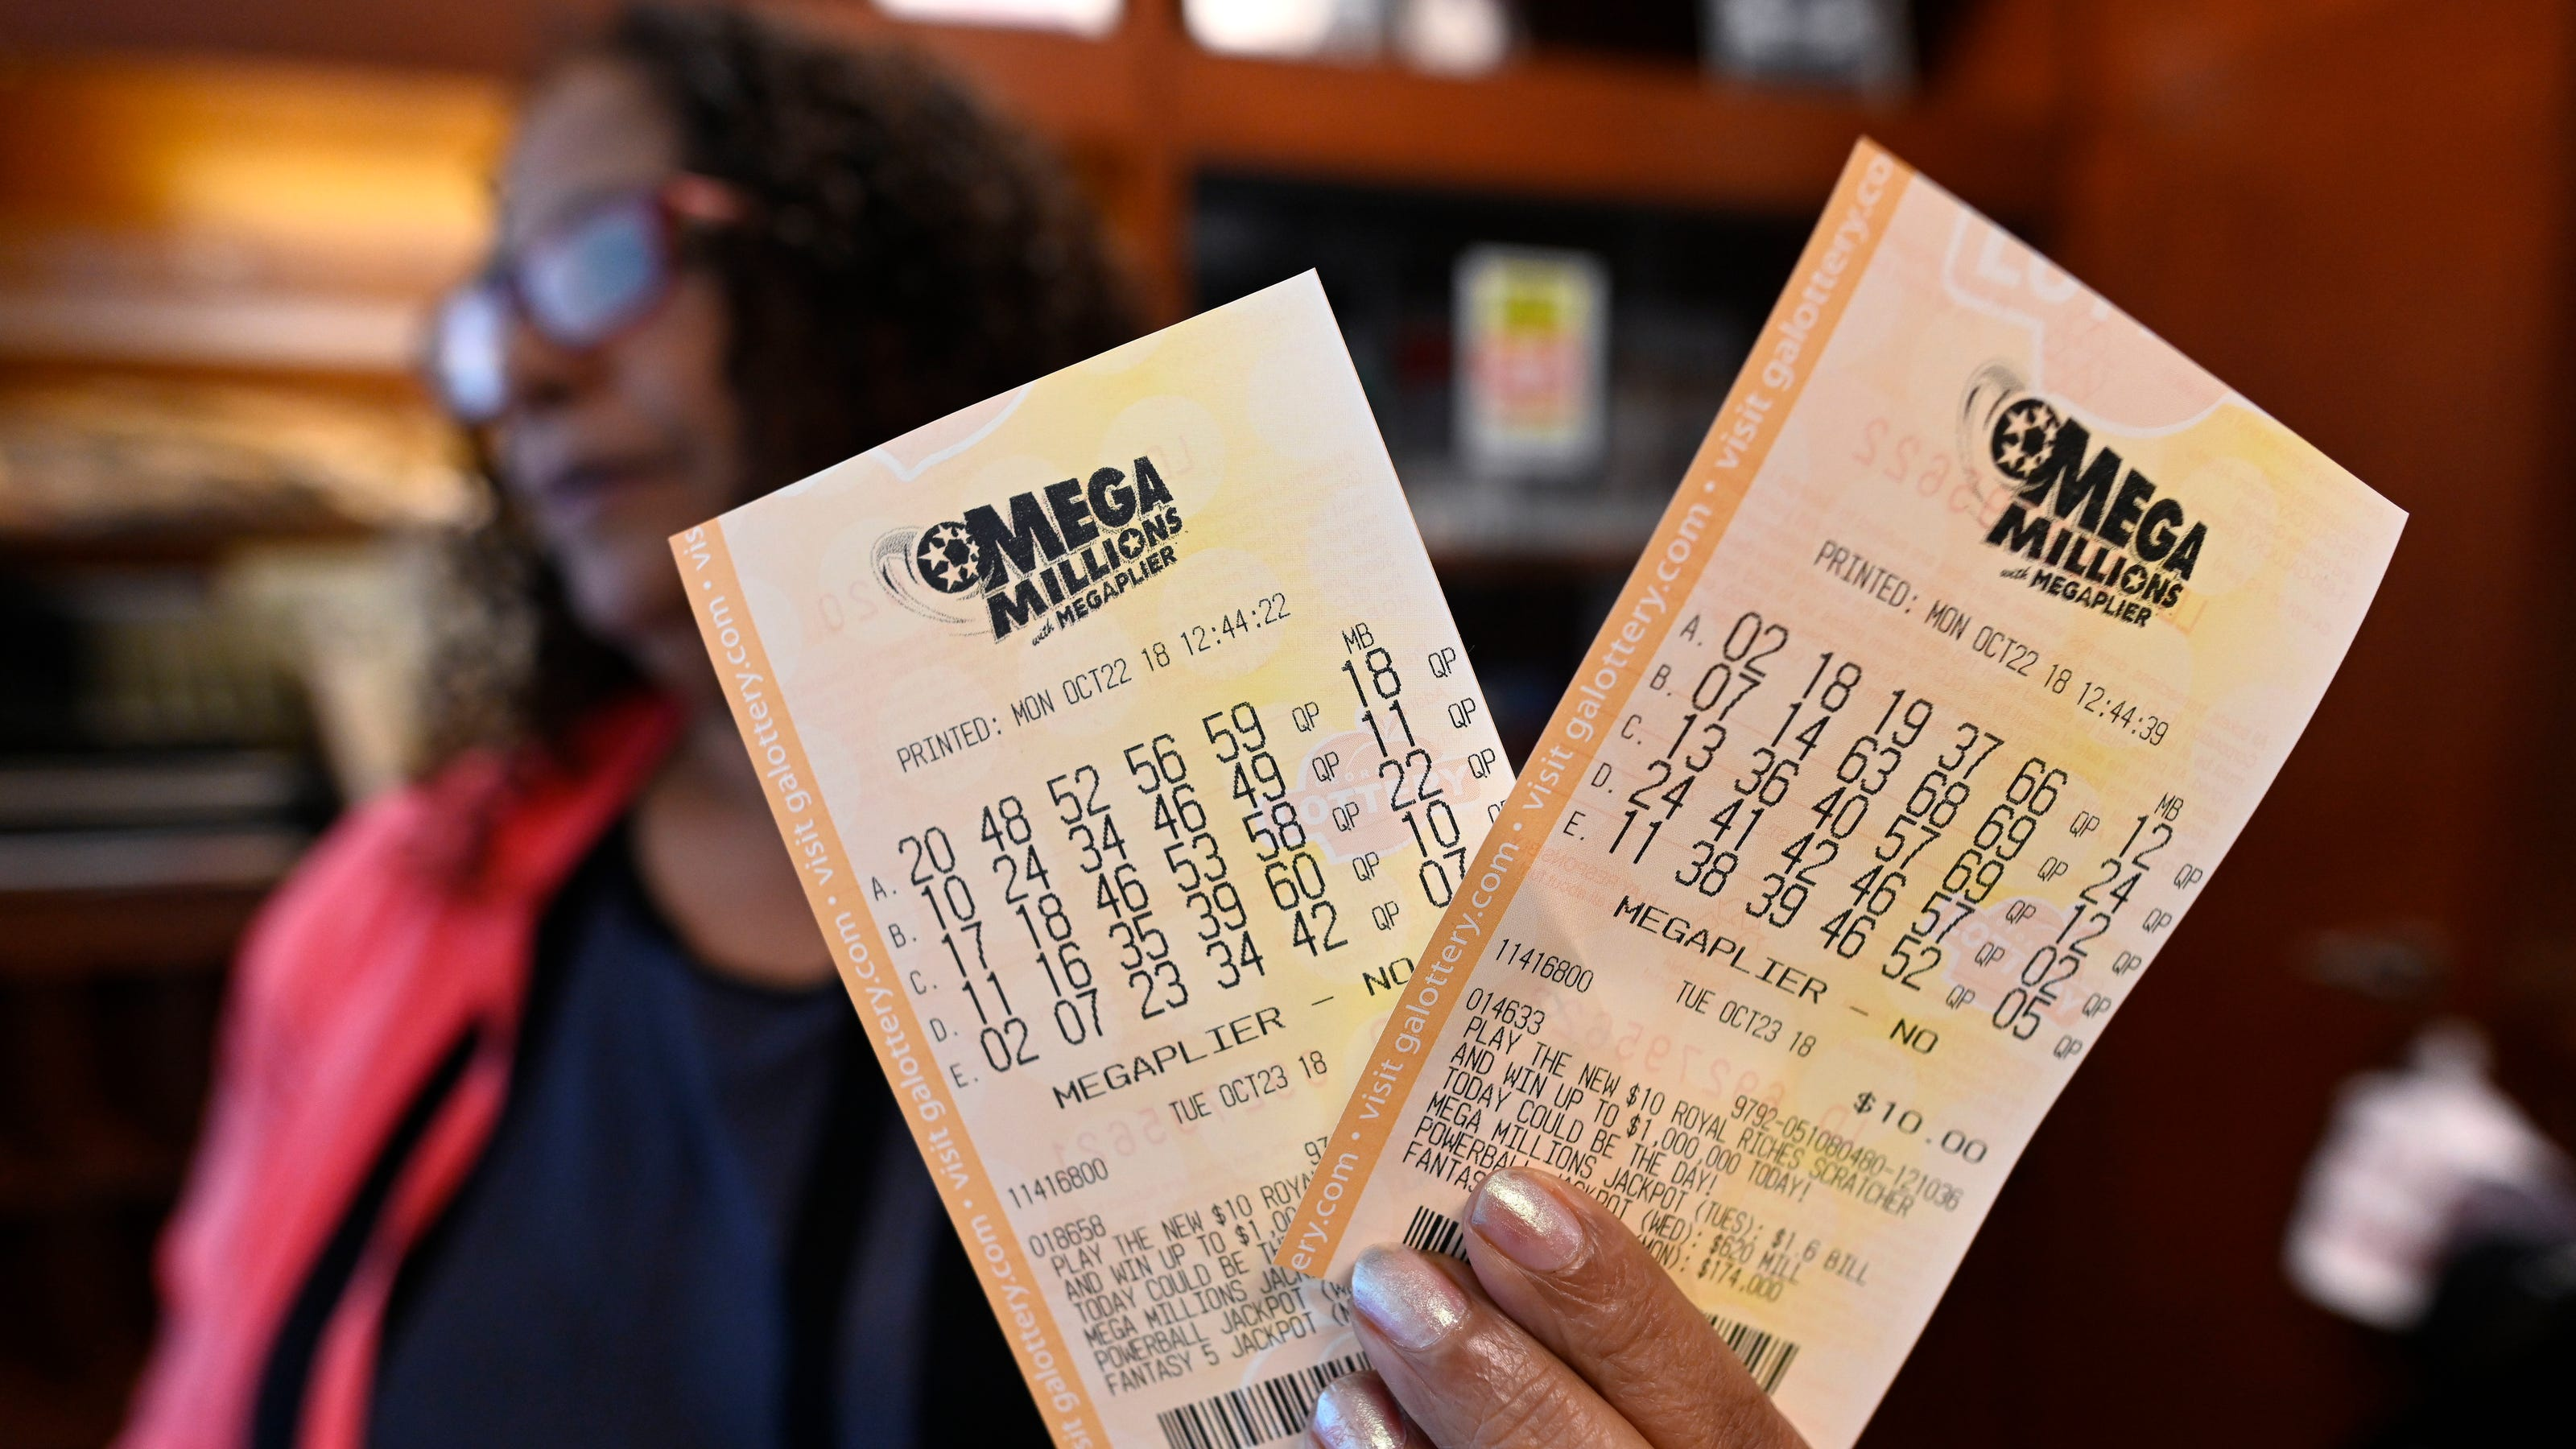 What are the most and least common Mega Millions numbers?